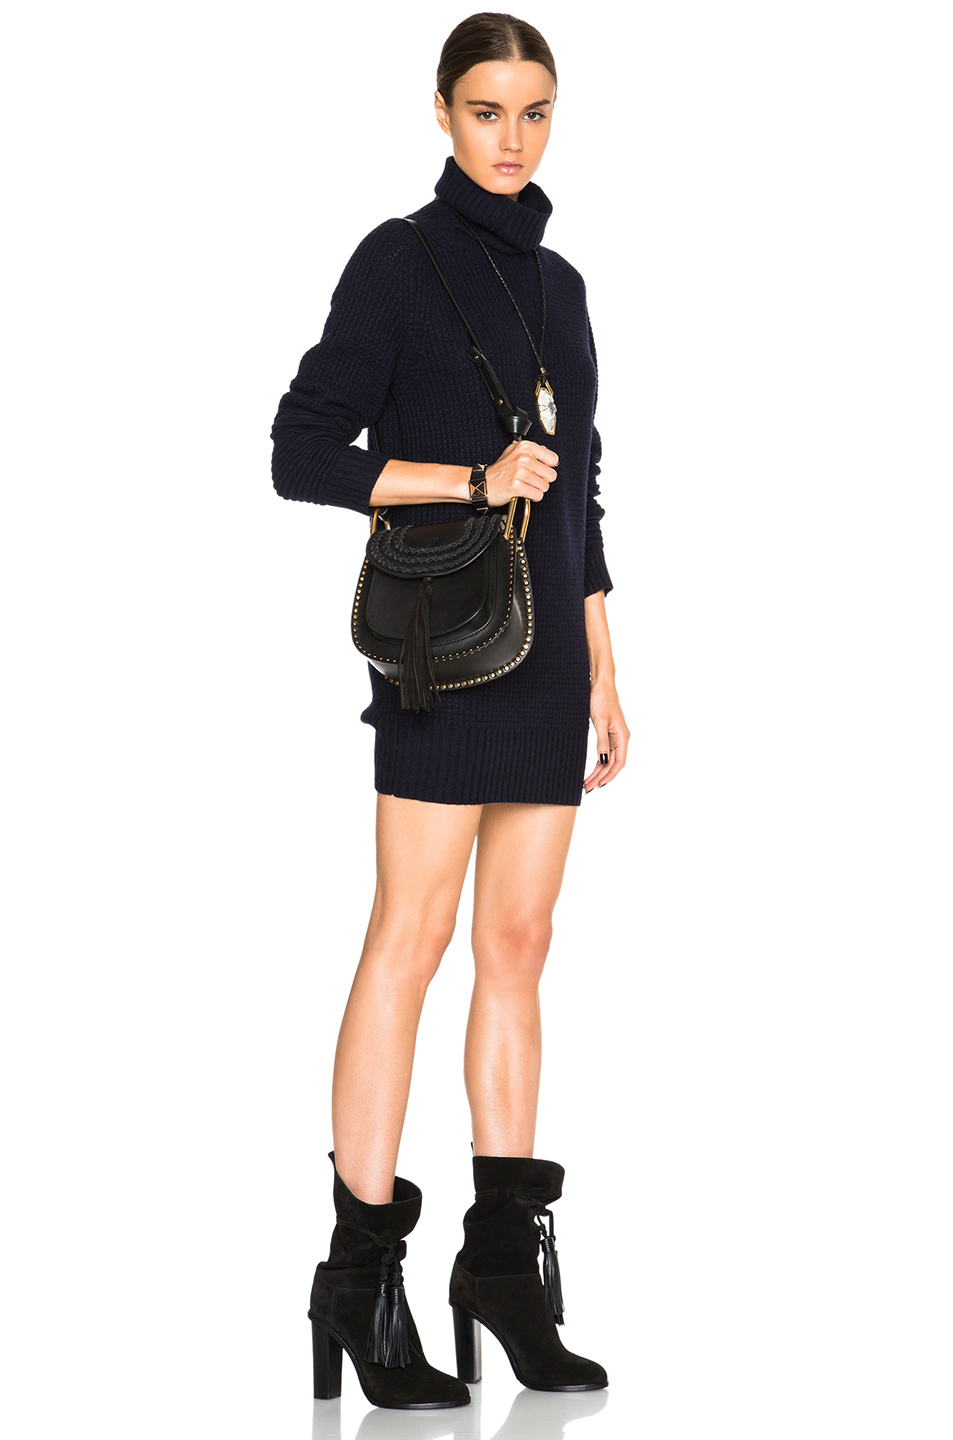 Chlo�� Hudson Braided Leather Bag in Black | Lyst